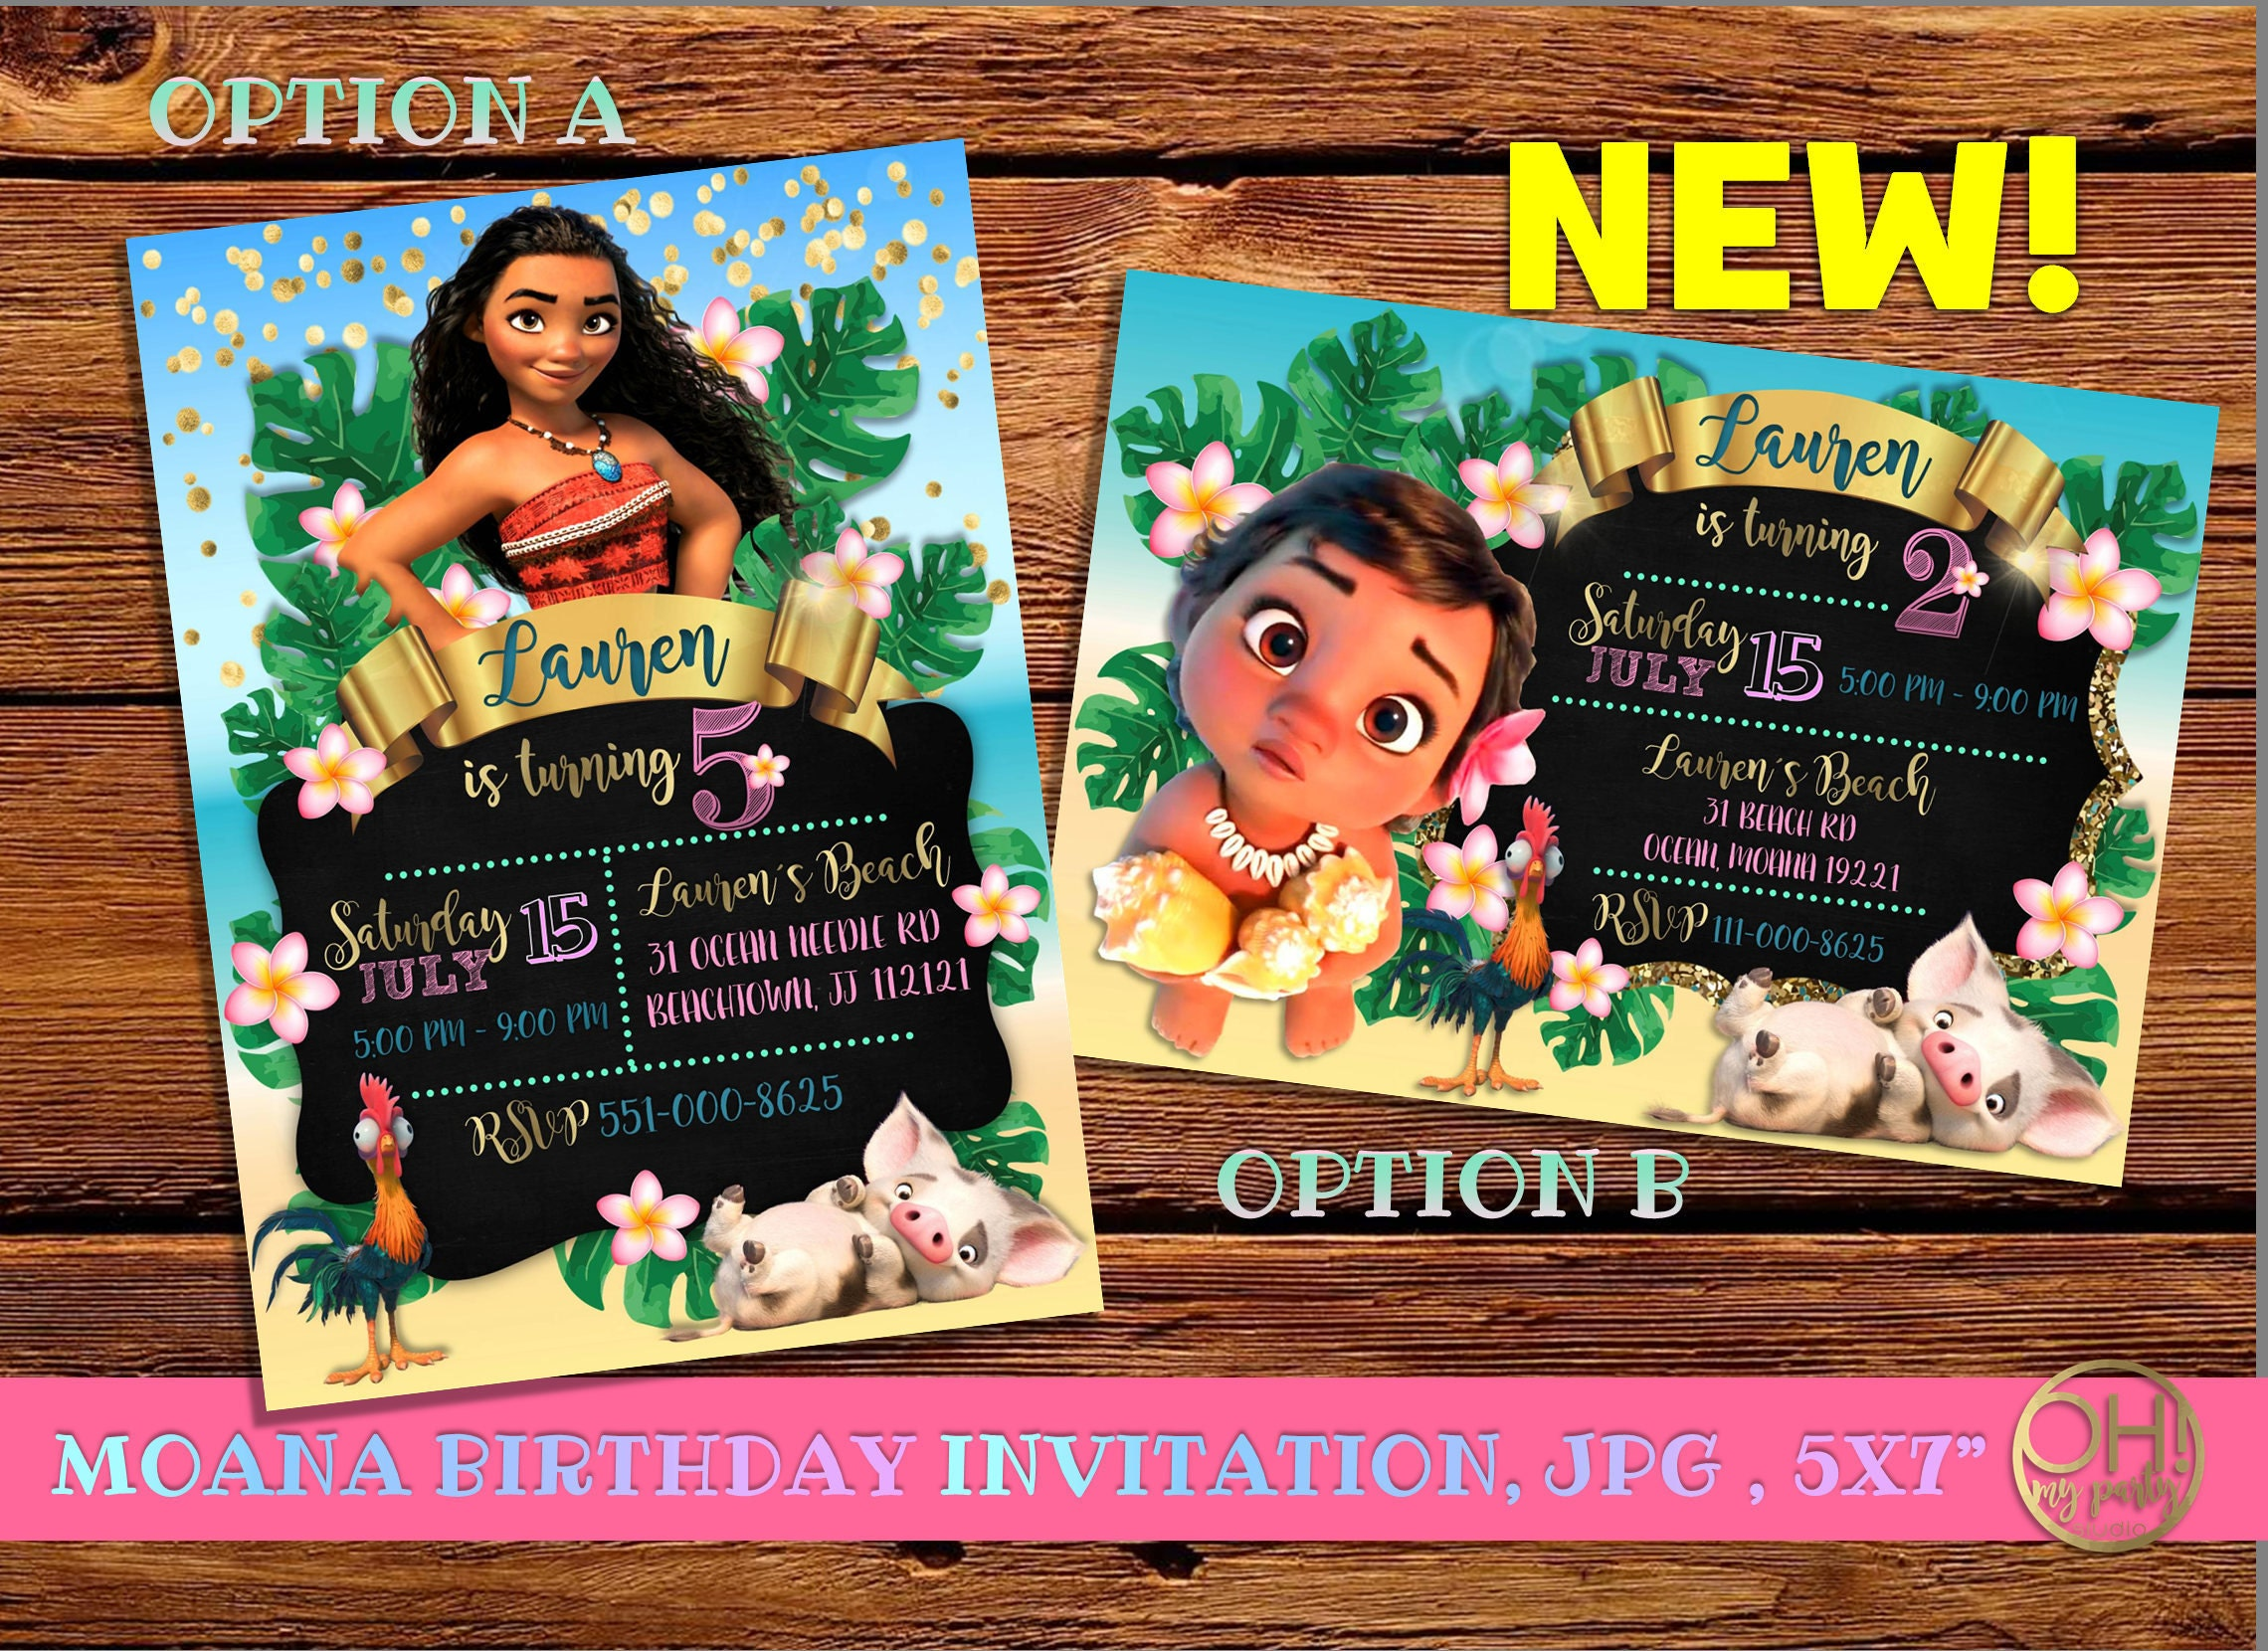 moana invitation template free - moana invitation moana birthday invitation moana party